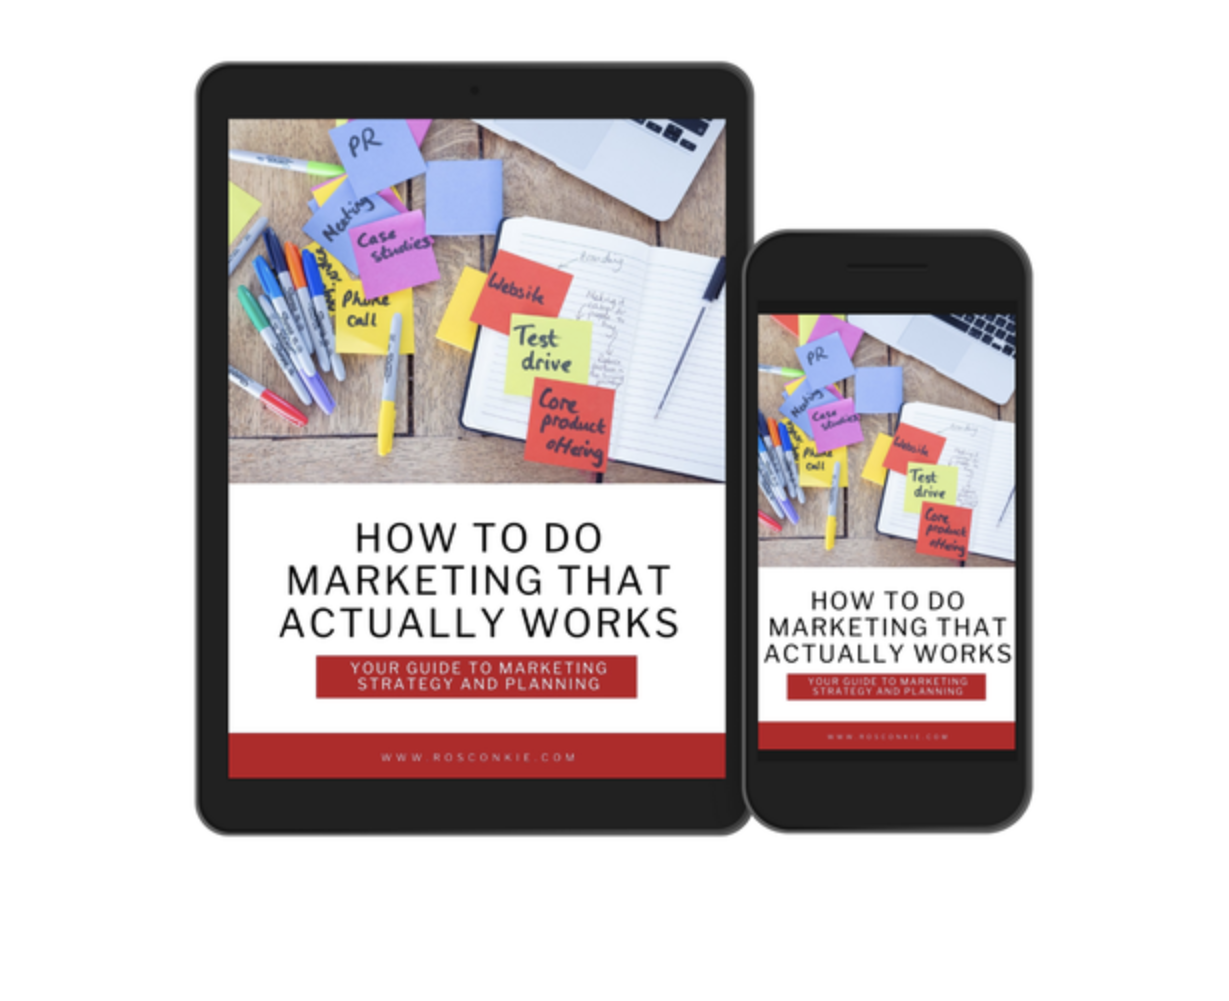 How to do marketing that actually works